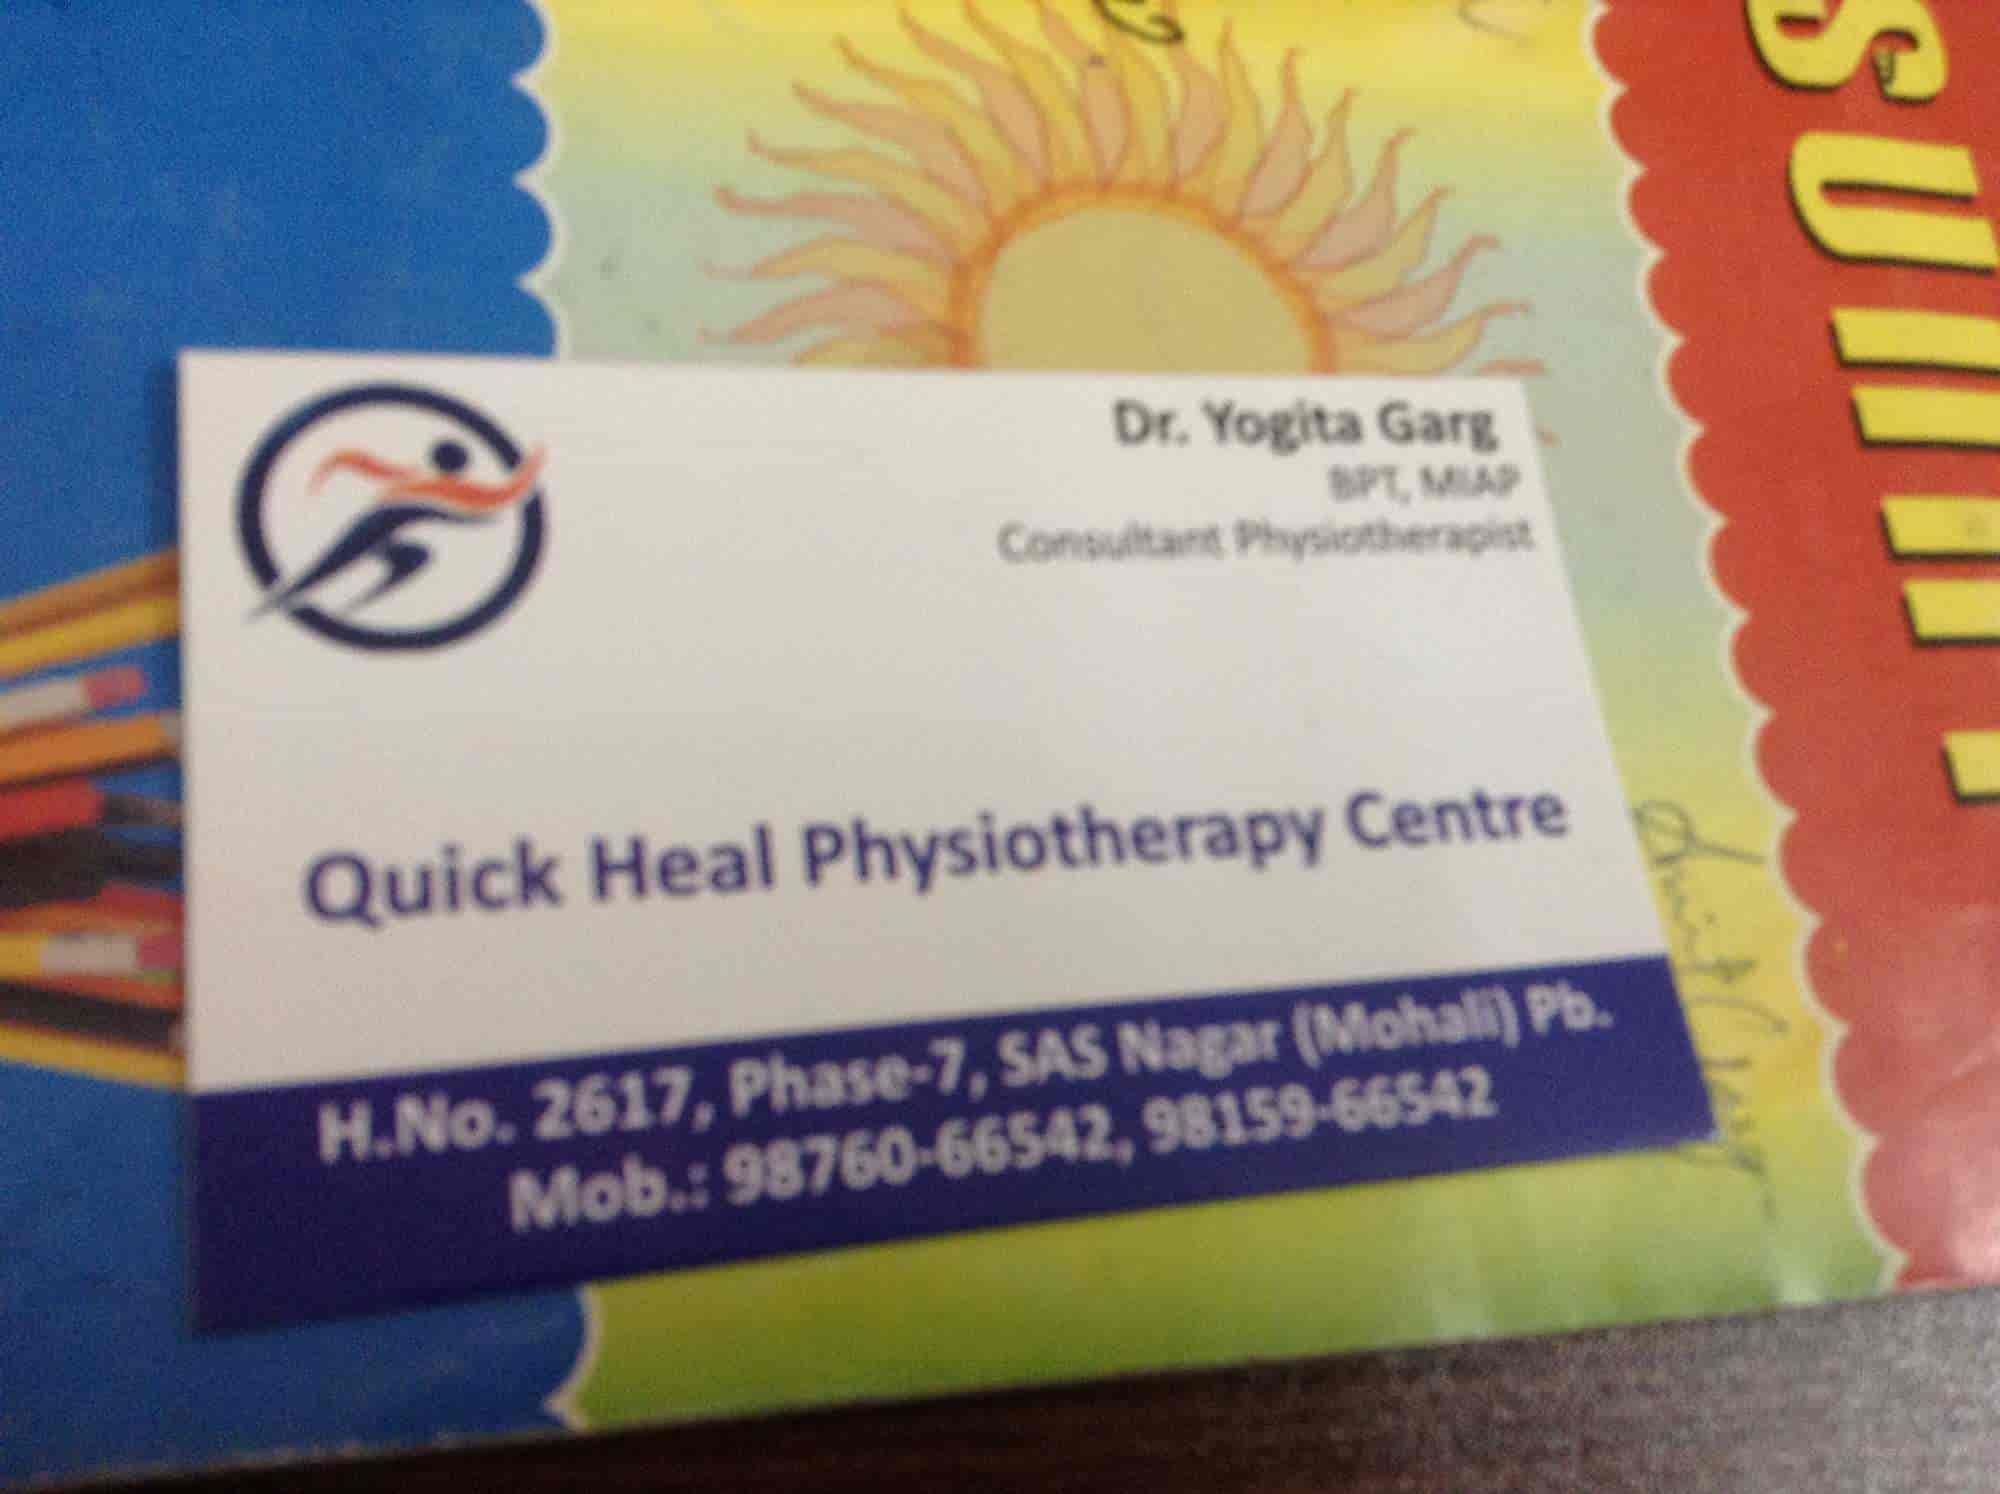 Quick Heal Physiotherapy Center - Physiothes - Book ... on